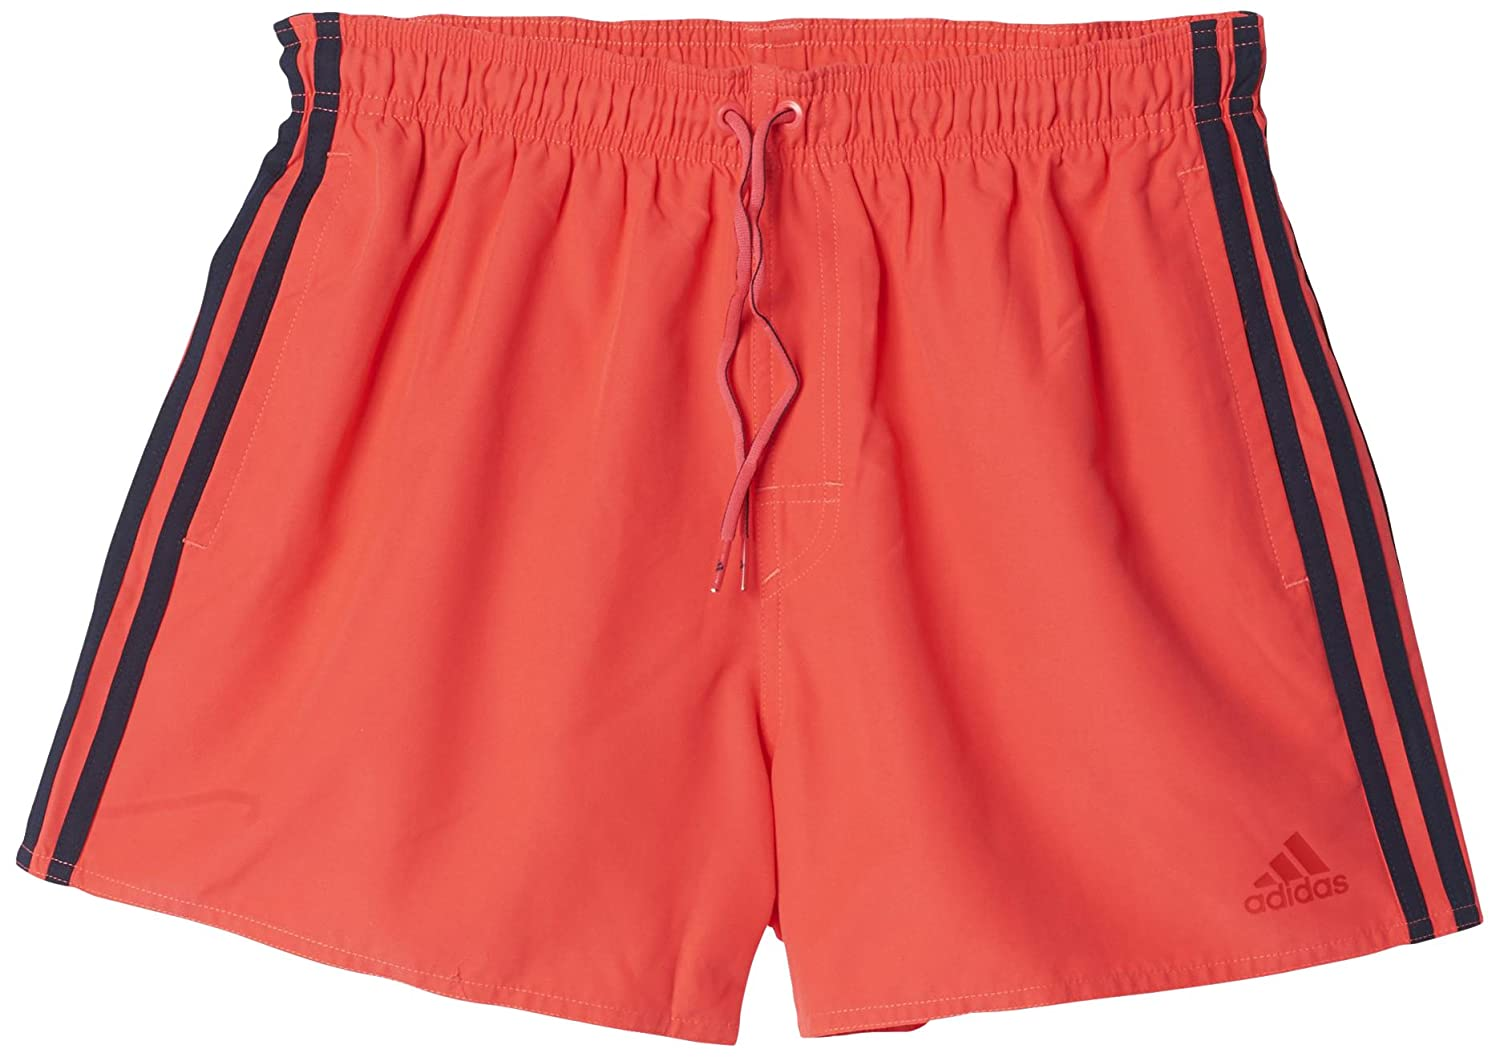 adidas Herren Shorts 3 Stripes Very Short Length